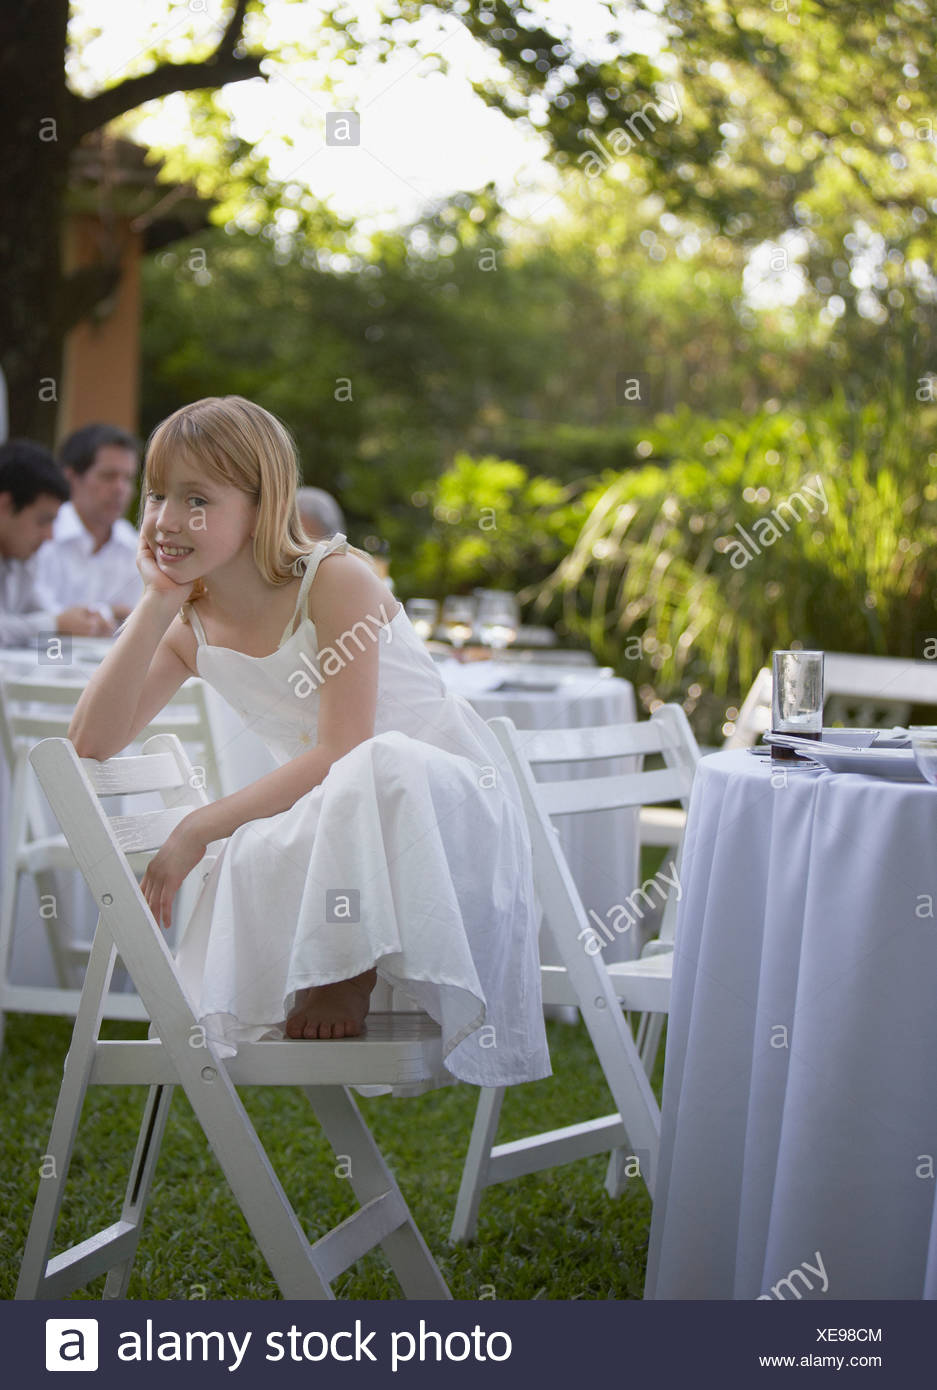 Young girl crouched on chair at outdoor party smiling - Stock Image